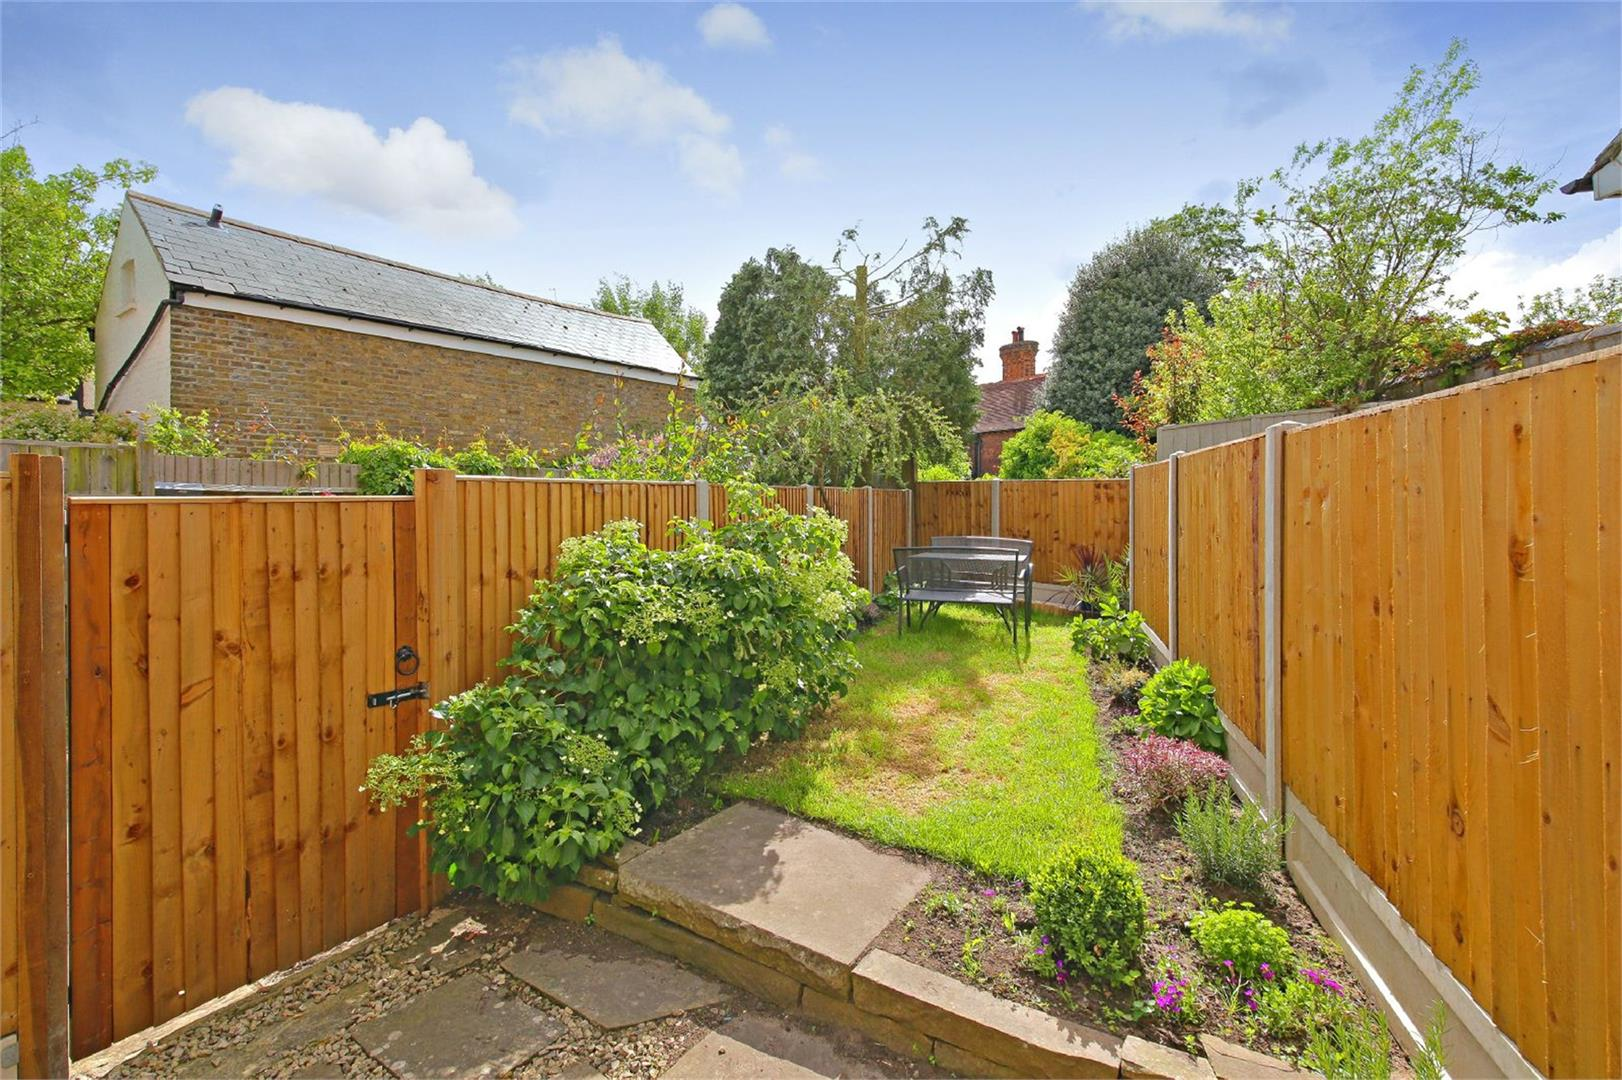 2 bed to rent in Letchmore Heath - (Property Image 9)